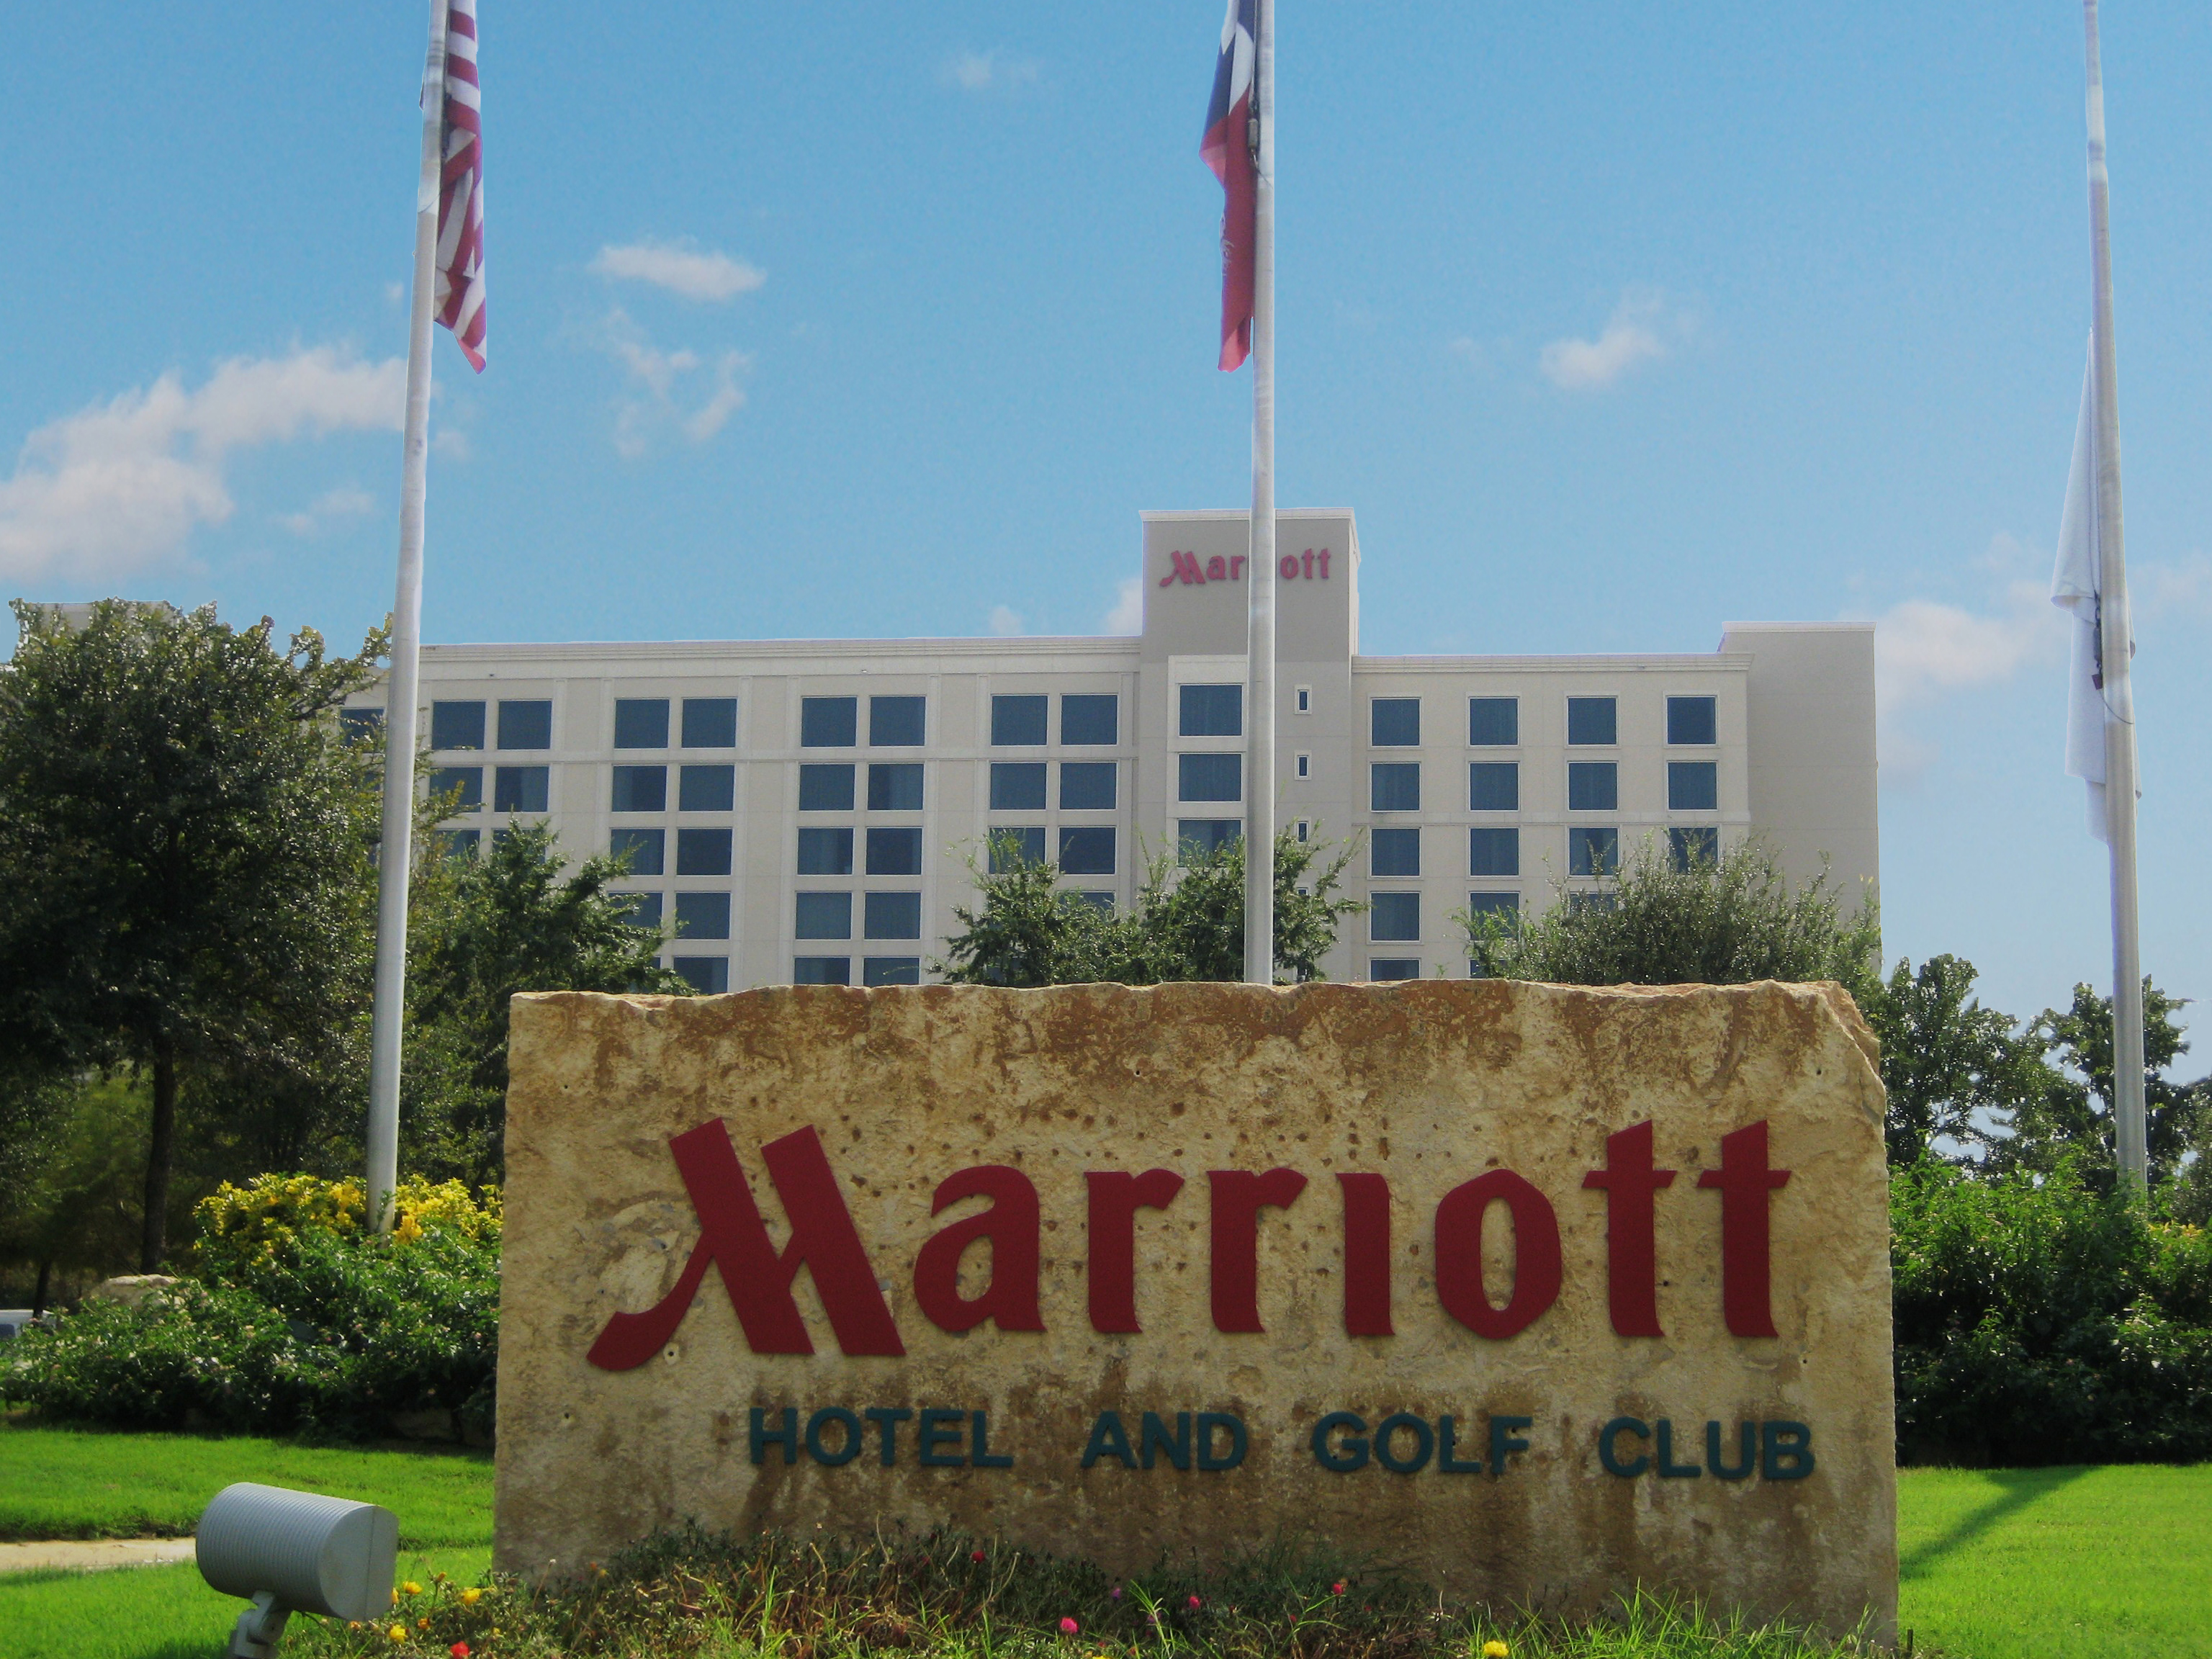 DFW Marriott Hotel and Golf Club